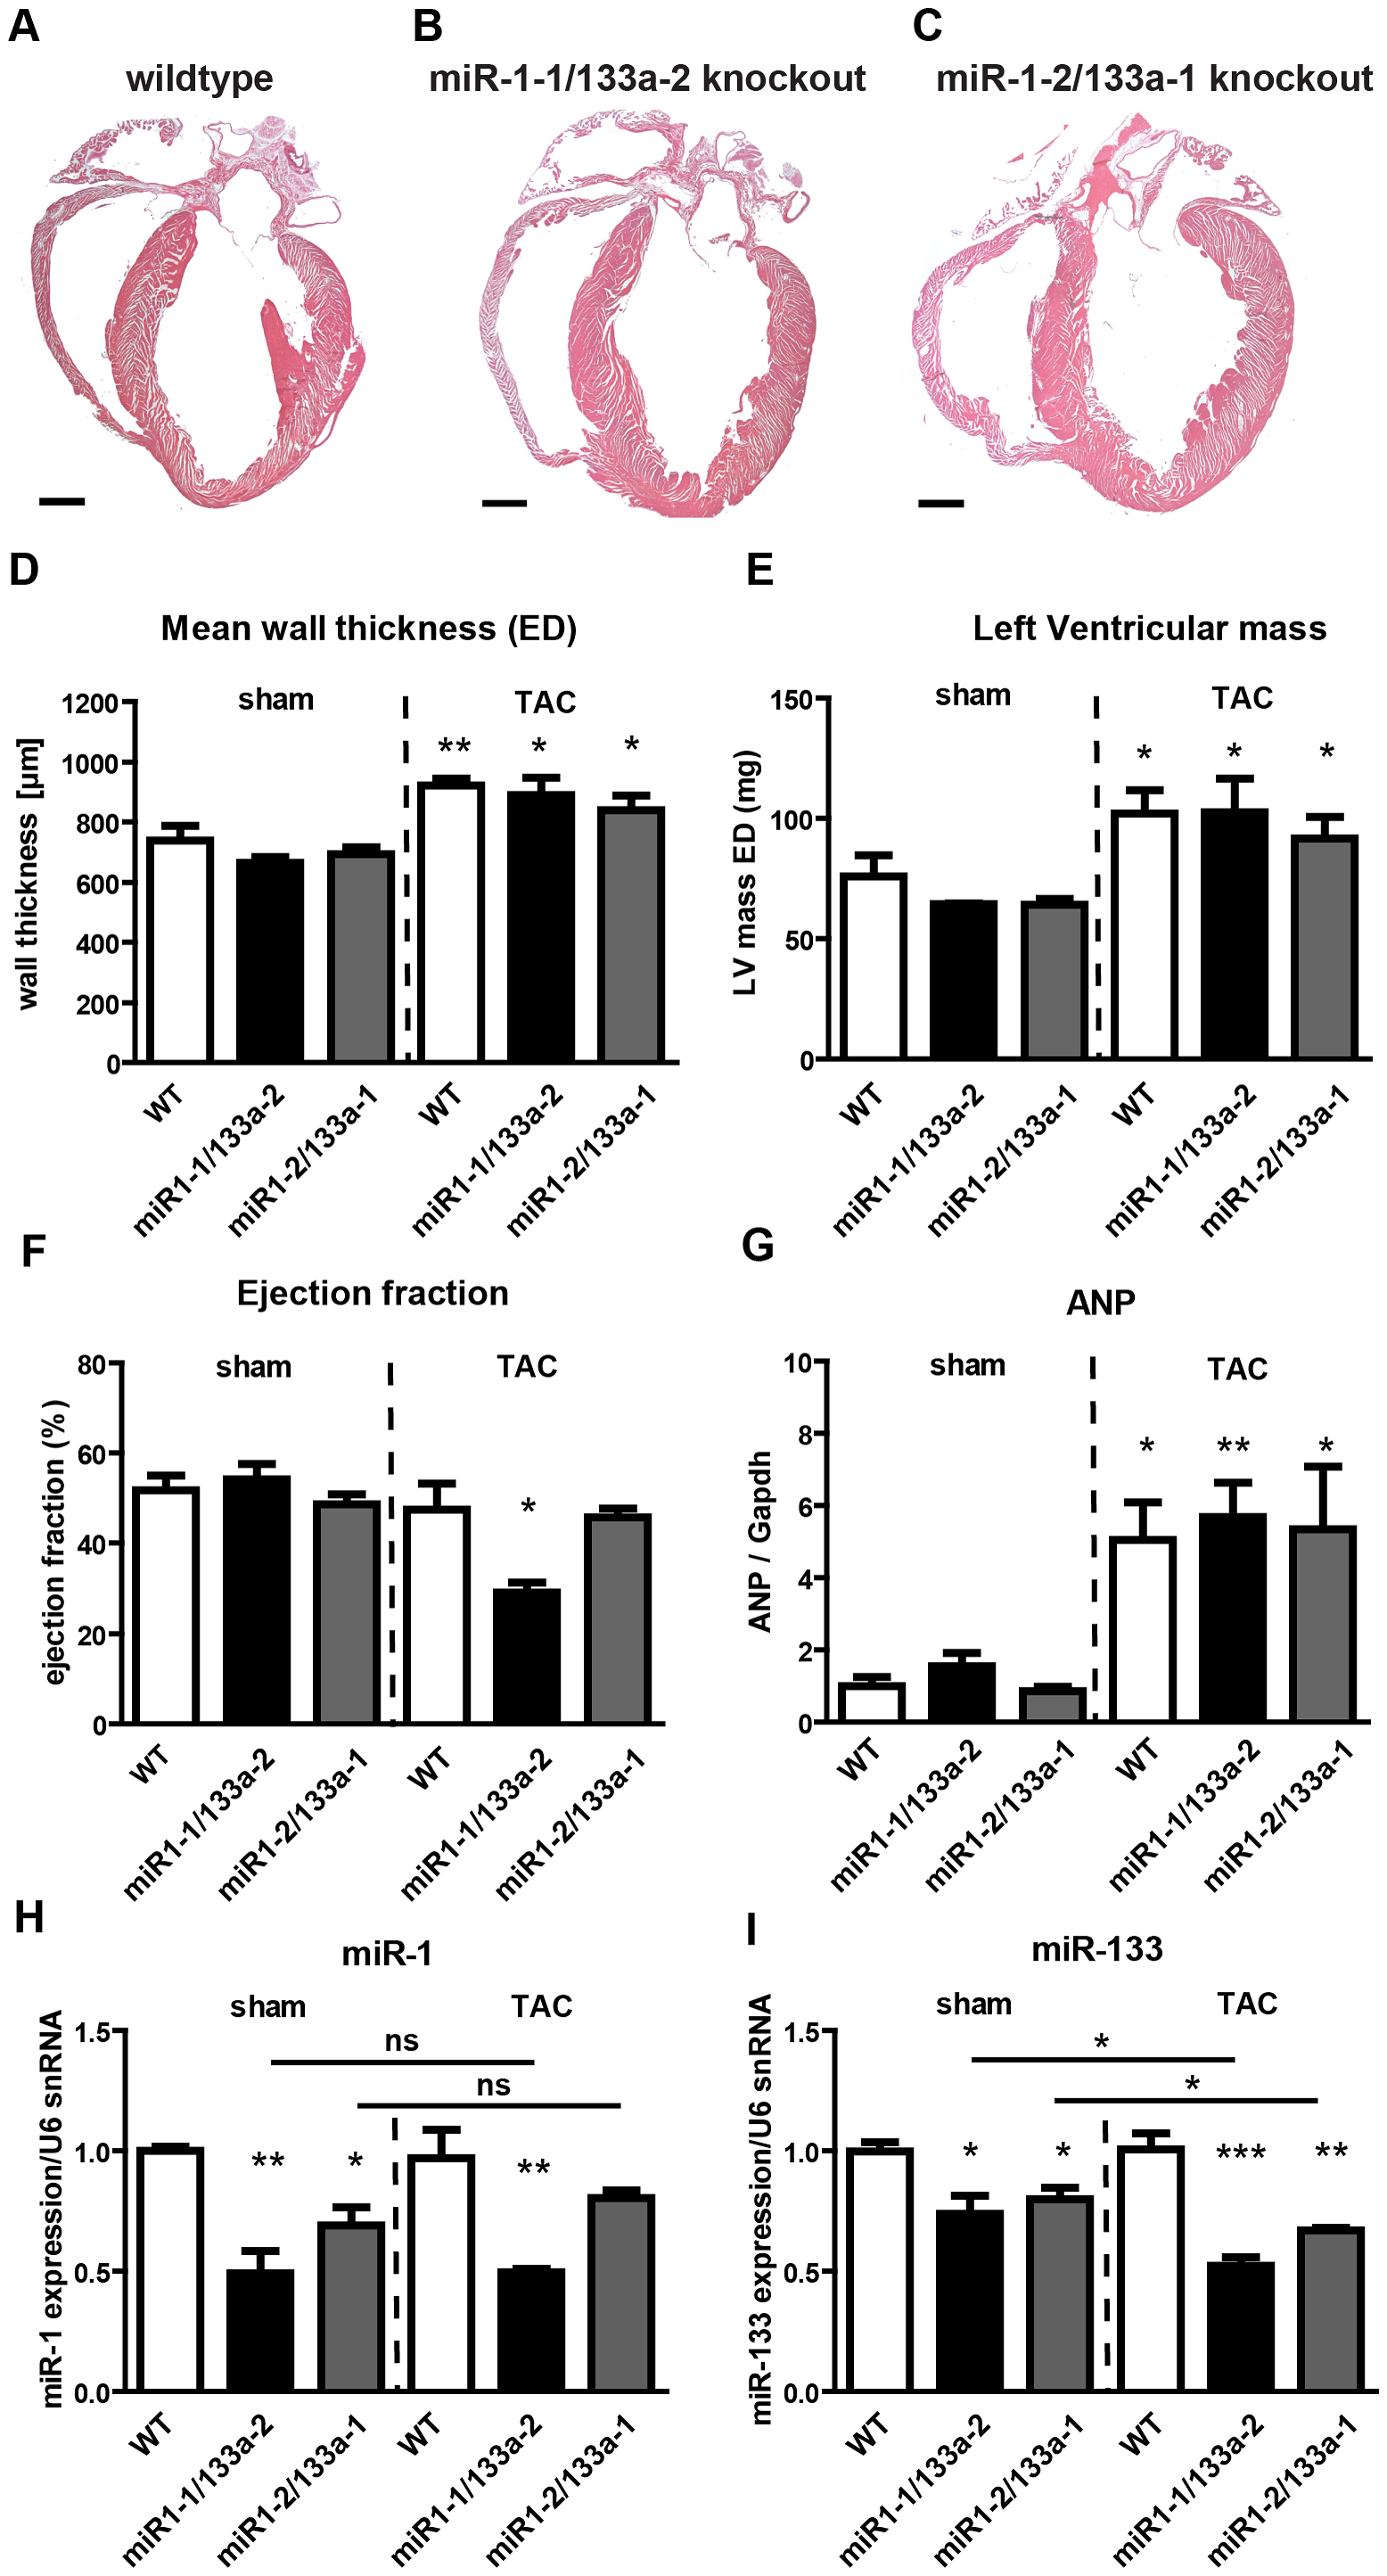 Deletion of single <i>miR-1/133a</i> clusters does not cause gross morphological alterations in the heart but results in decreased ejection fraction in <i>miR-1-1/133a-2</i> mutants after TAC.